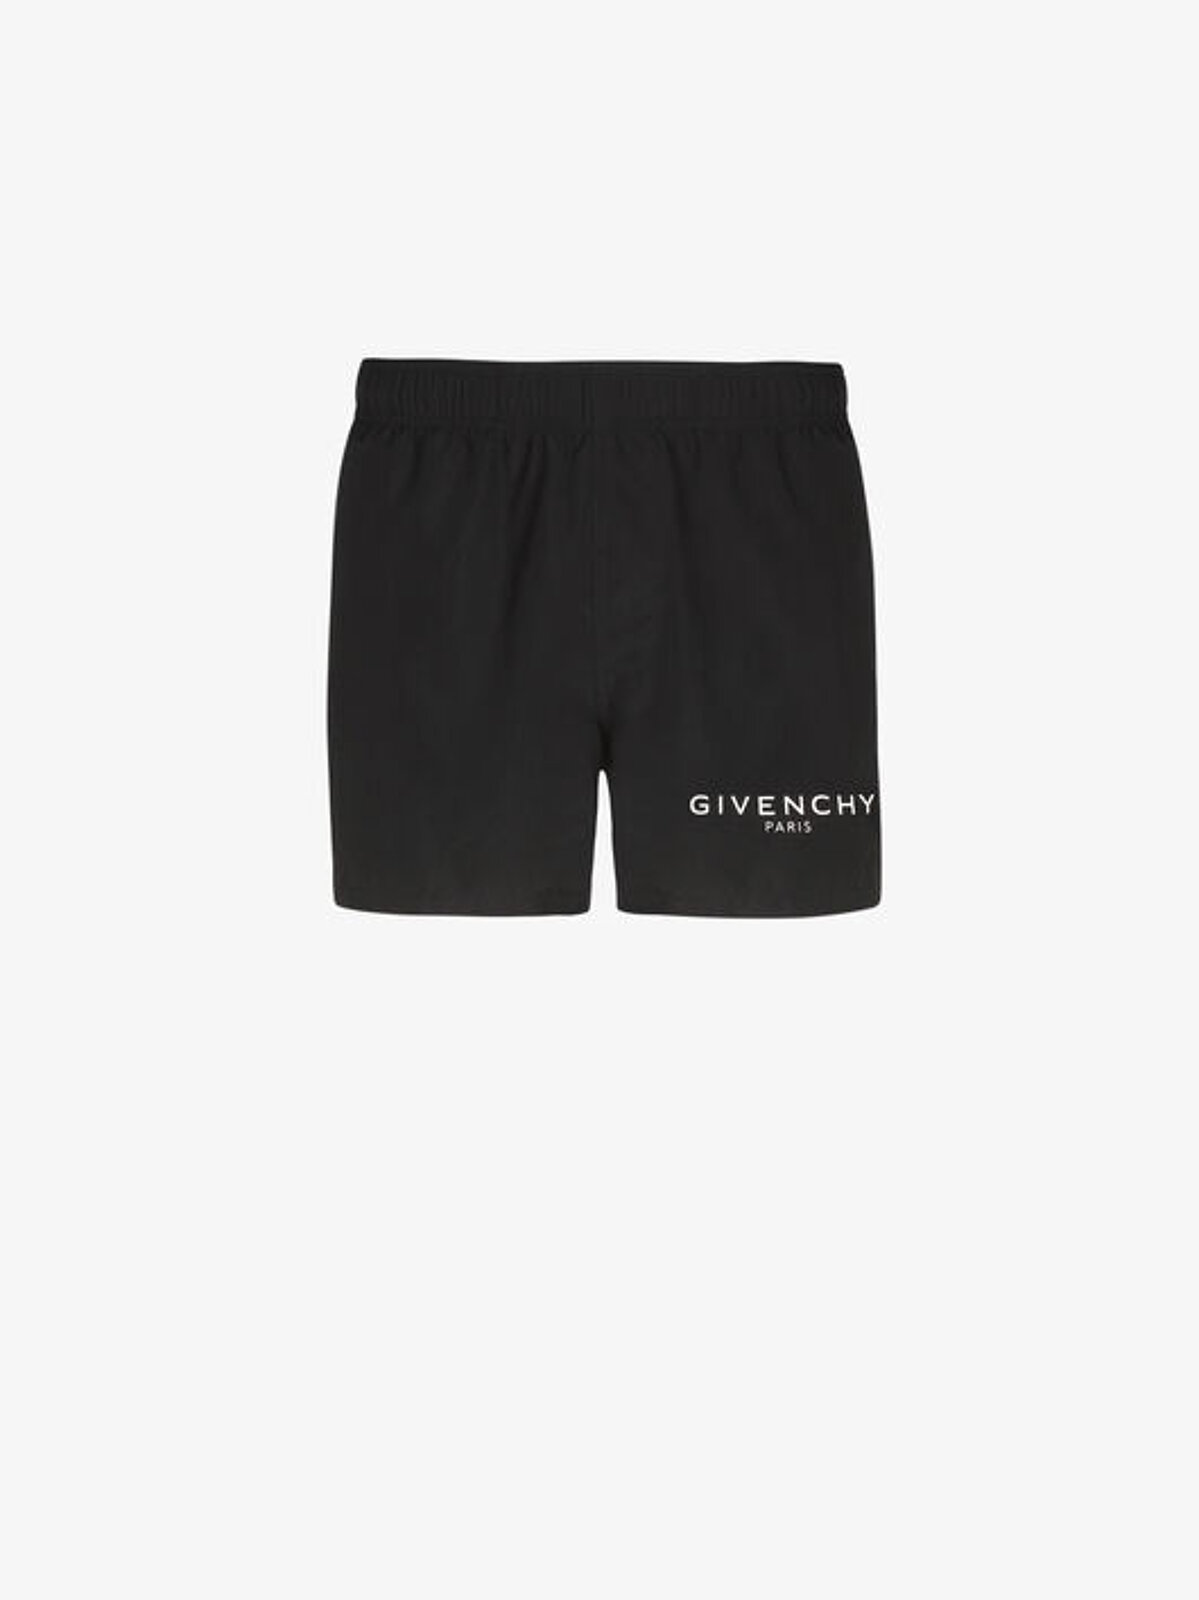 Short da mare GIVENCHY PARIS - Givenchy